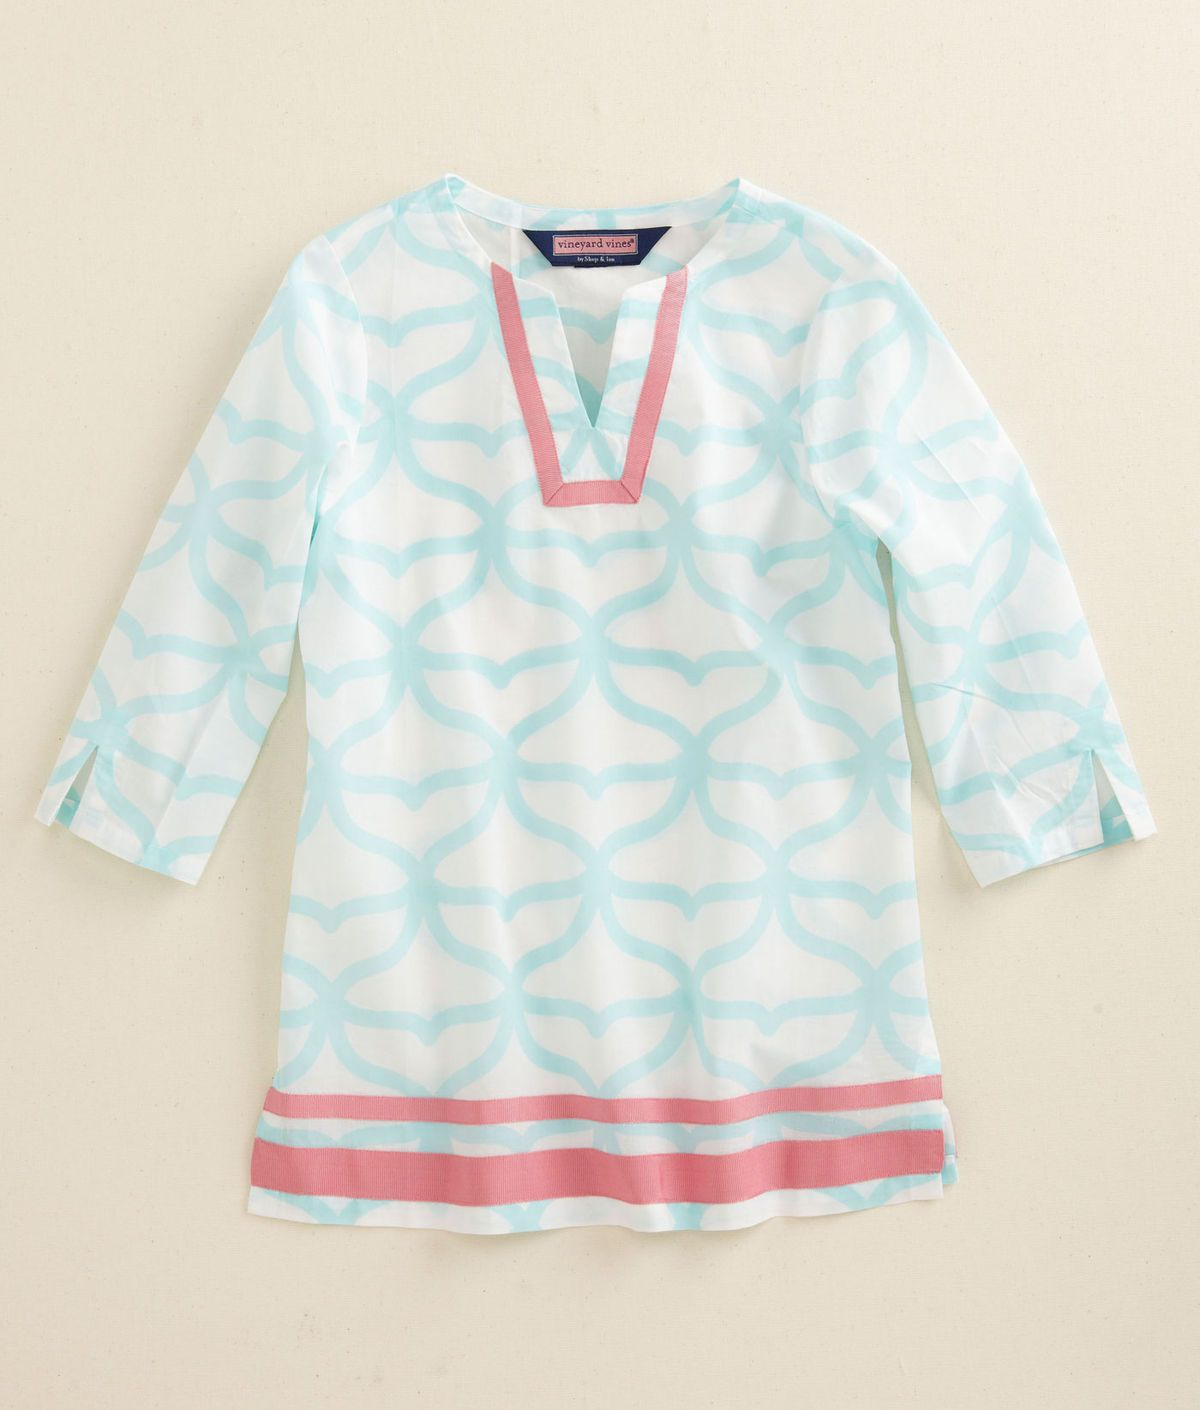 afd298899c18 Girls Cover-Ups  Whale Tail Cover-Up – Vineyard Vines